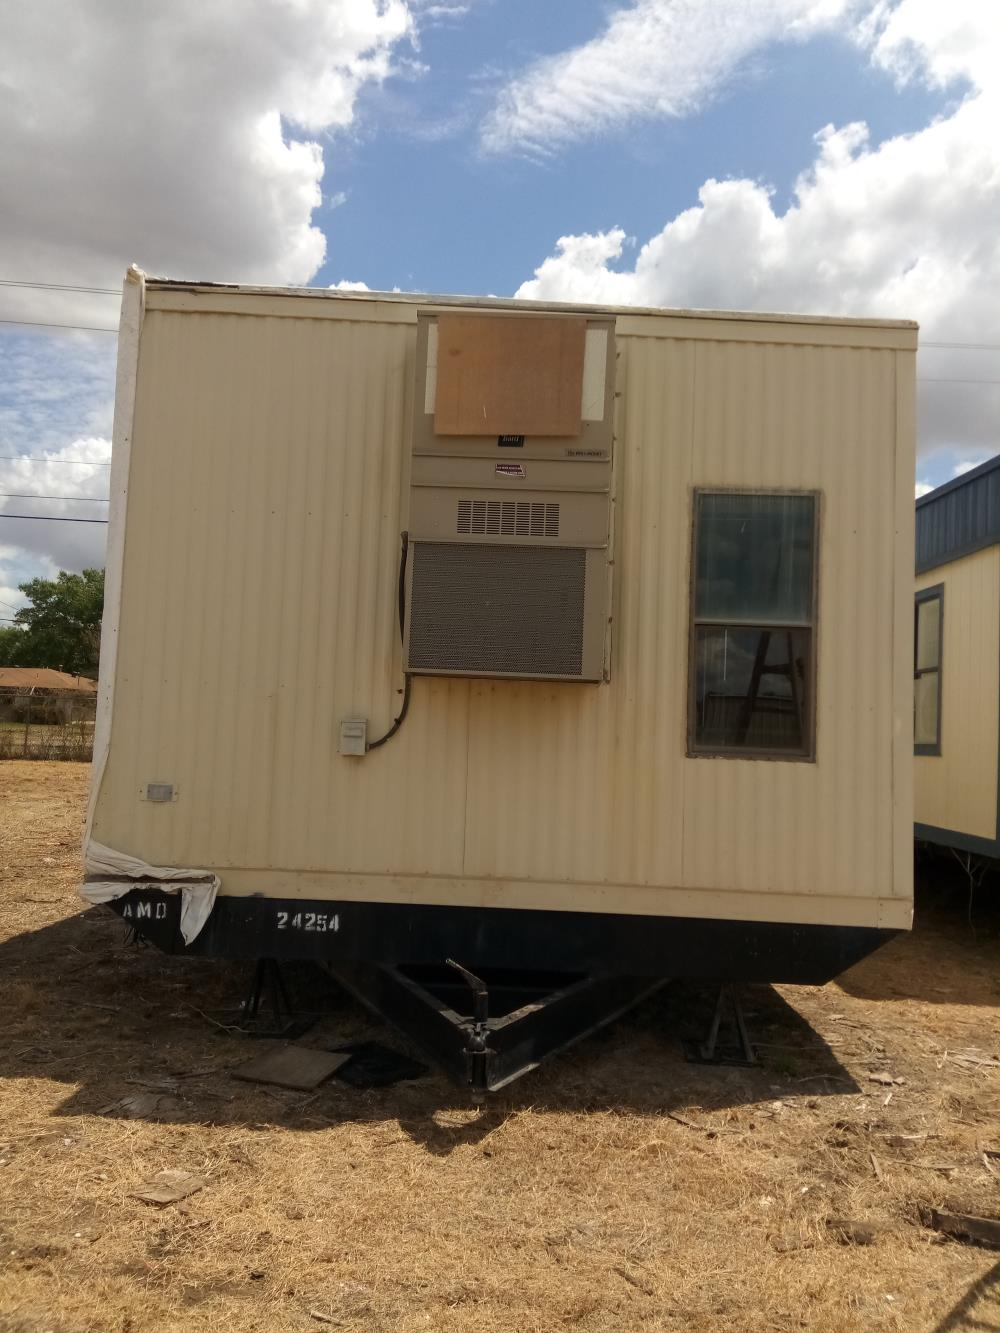 64'x28' Section Modular for sale in San Antonio, TX - CPX-98276 - 4